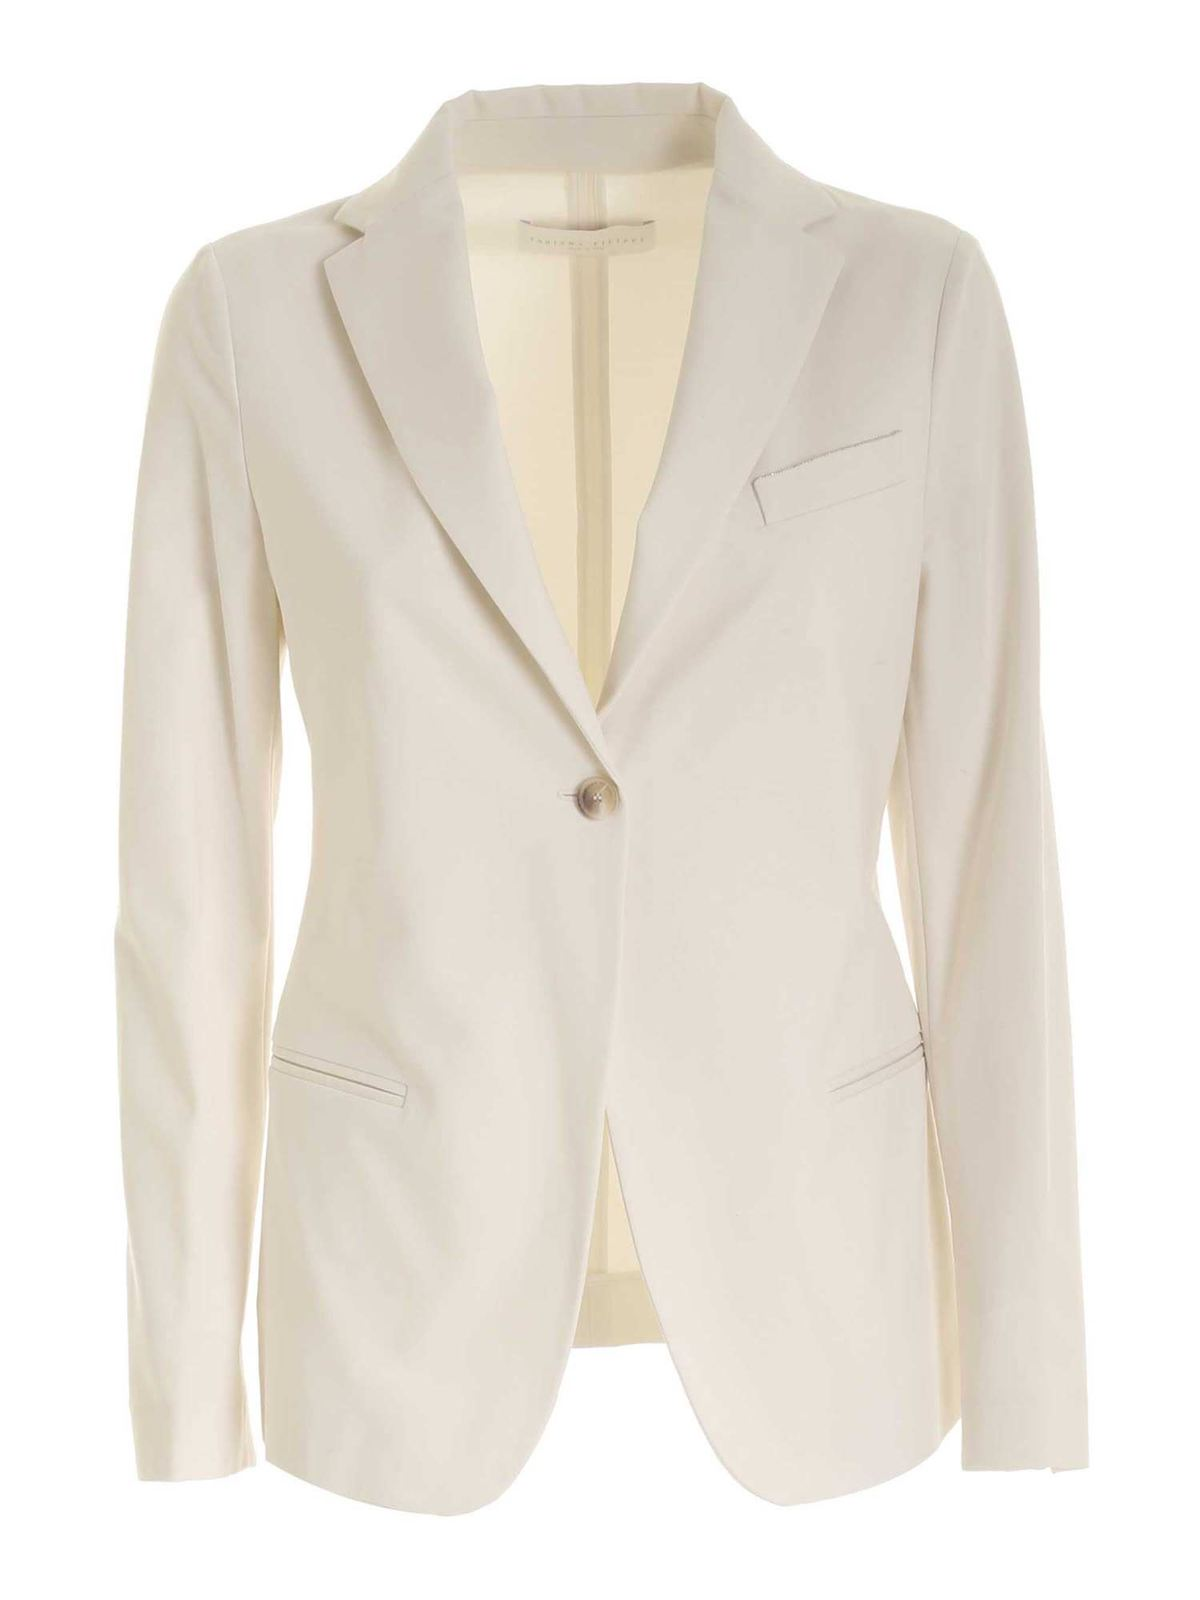 Fabiana Filippi MICRO BEADS JACKET IN WHITE